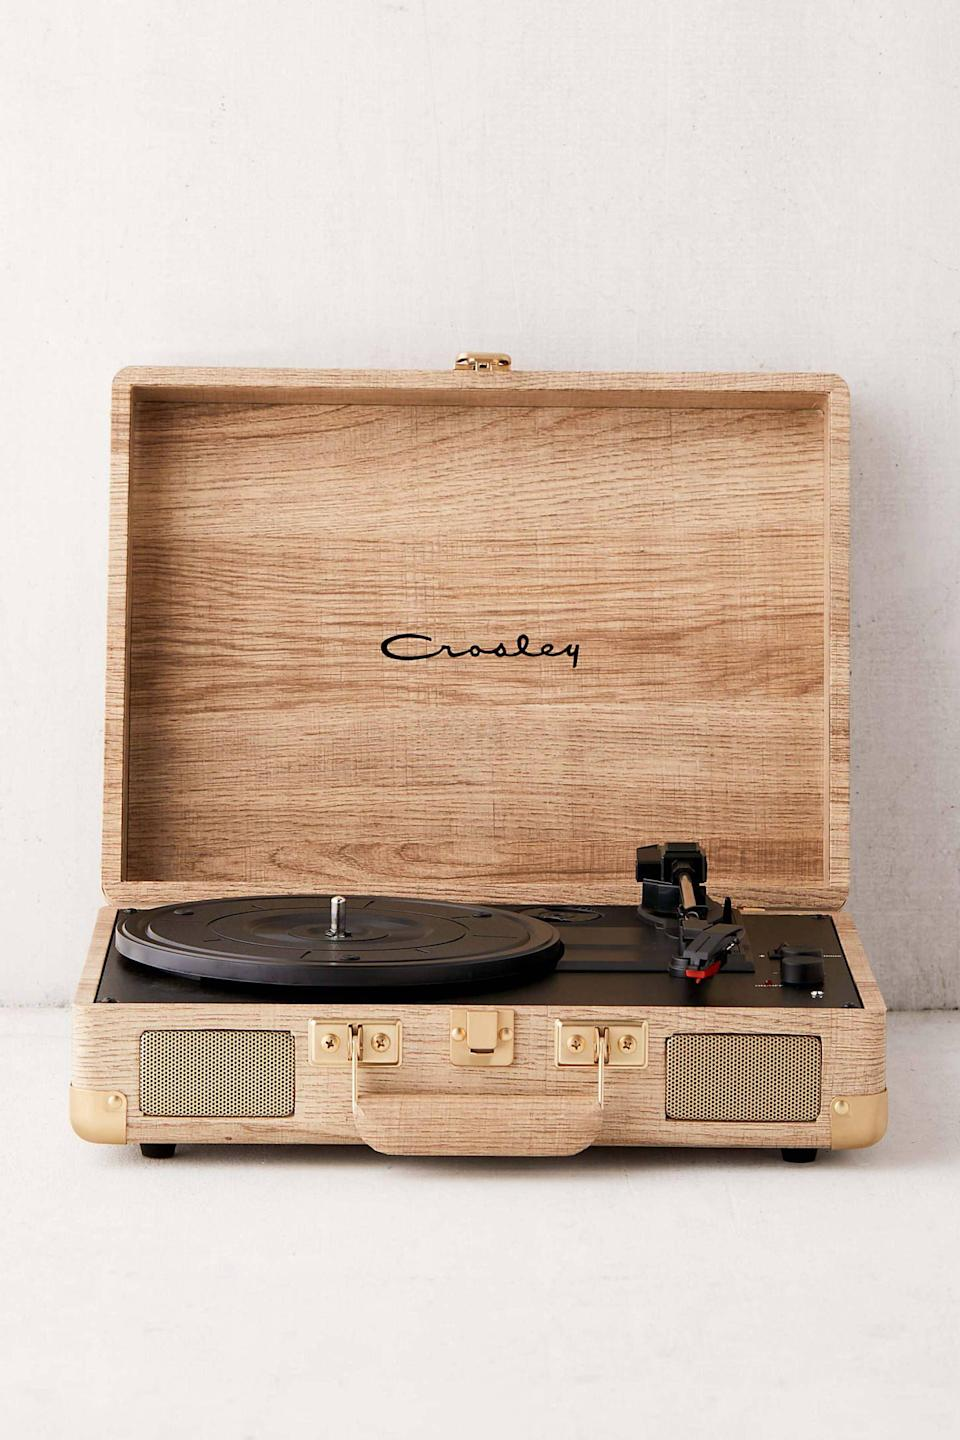 """<p><strong>Crosley</strong></p><p>urbanoutfitters.com</p><p><strong>$89.00</strong></p><p><a href=""""https://go.redirectingat.com?id=74968X1596630&url=https%3A%2F%2Fwww.urbanoutfitters.com%2Fshop%2Fcrosley-uo-exclusive-wood-cruiser-bluetooth-record-player&sref=https%3A%2F%2Fwww.seventeen.com%2Flove%2Fdating-advice%2Fg30107520%2Fone-year-anniversary-gifts-for-him-boyfriend%2F"""" rel=""""nofollow noopener"""" target=""""_blank"""" data-ylk=""""slk:Shop Now"""" class=""""link rapid-noclick-resp"""">Shop Now</a></p><p>If your boyfriend has a Spotify playlist for every situation, this record player is the perfect gift for him. Plus, it allows him to start collection vinyl albums, meaning you'll be able to gift him those for the foreseeable future.</p>"""